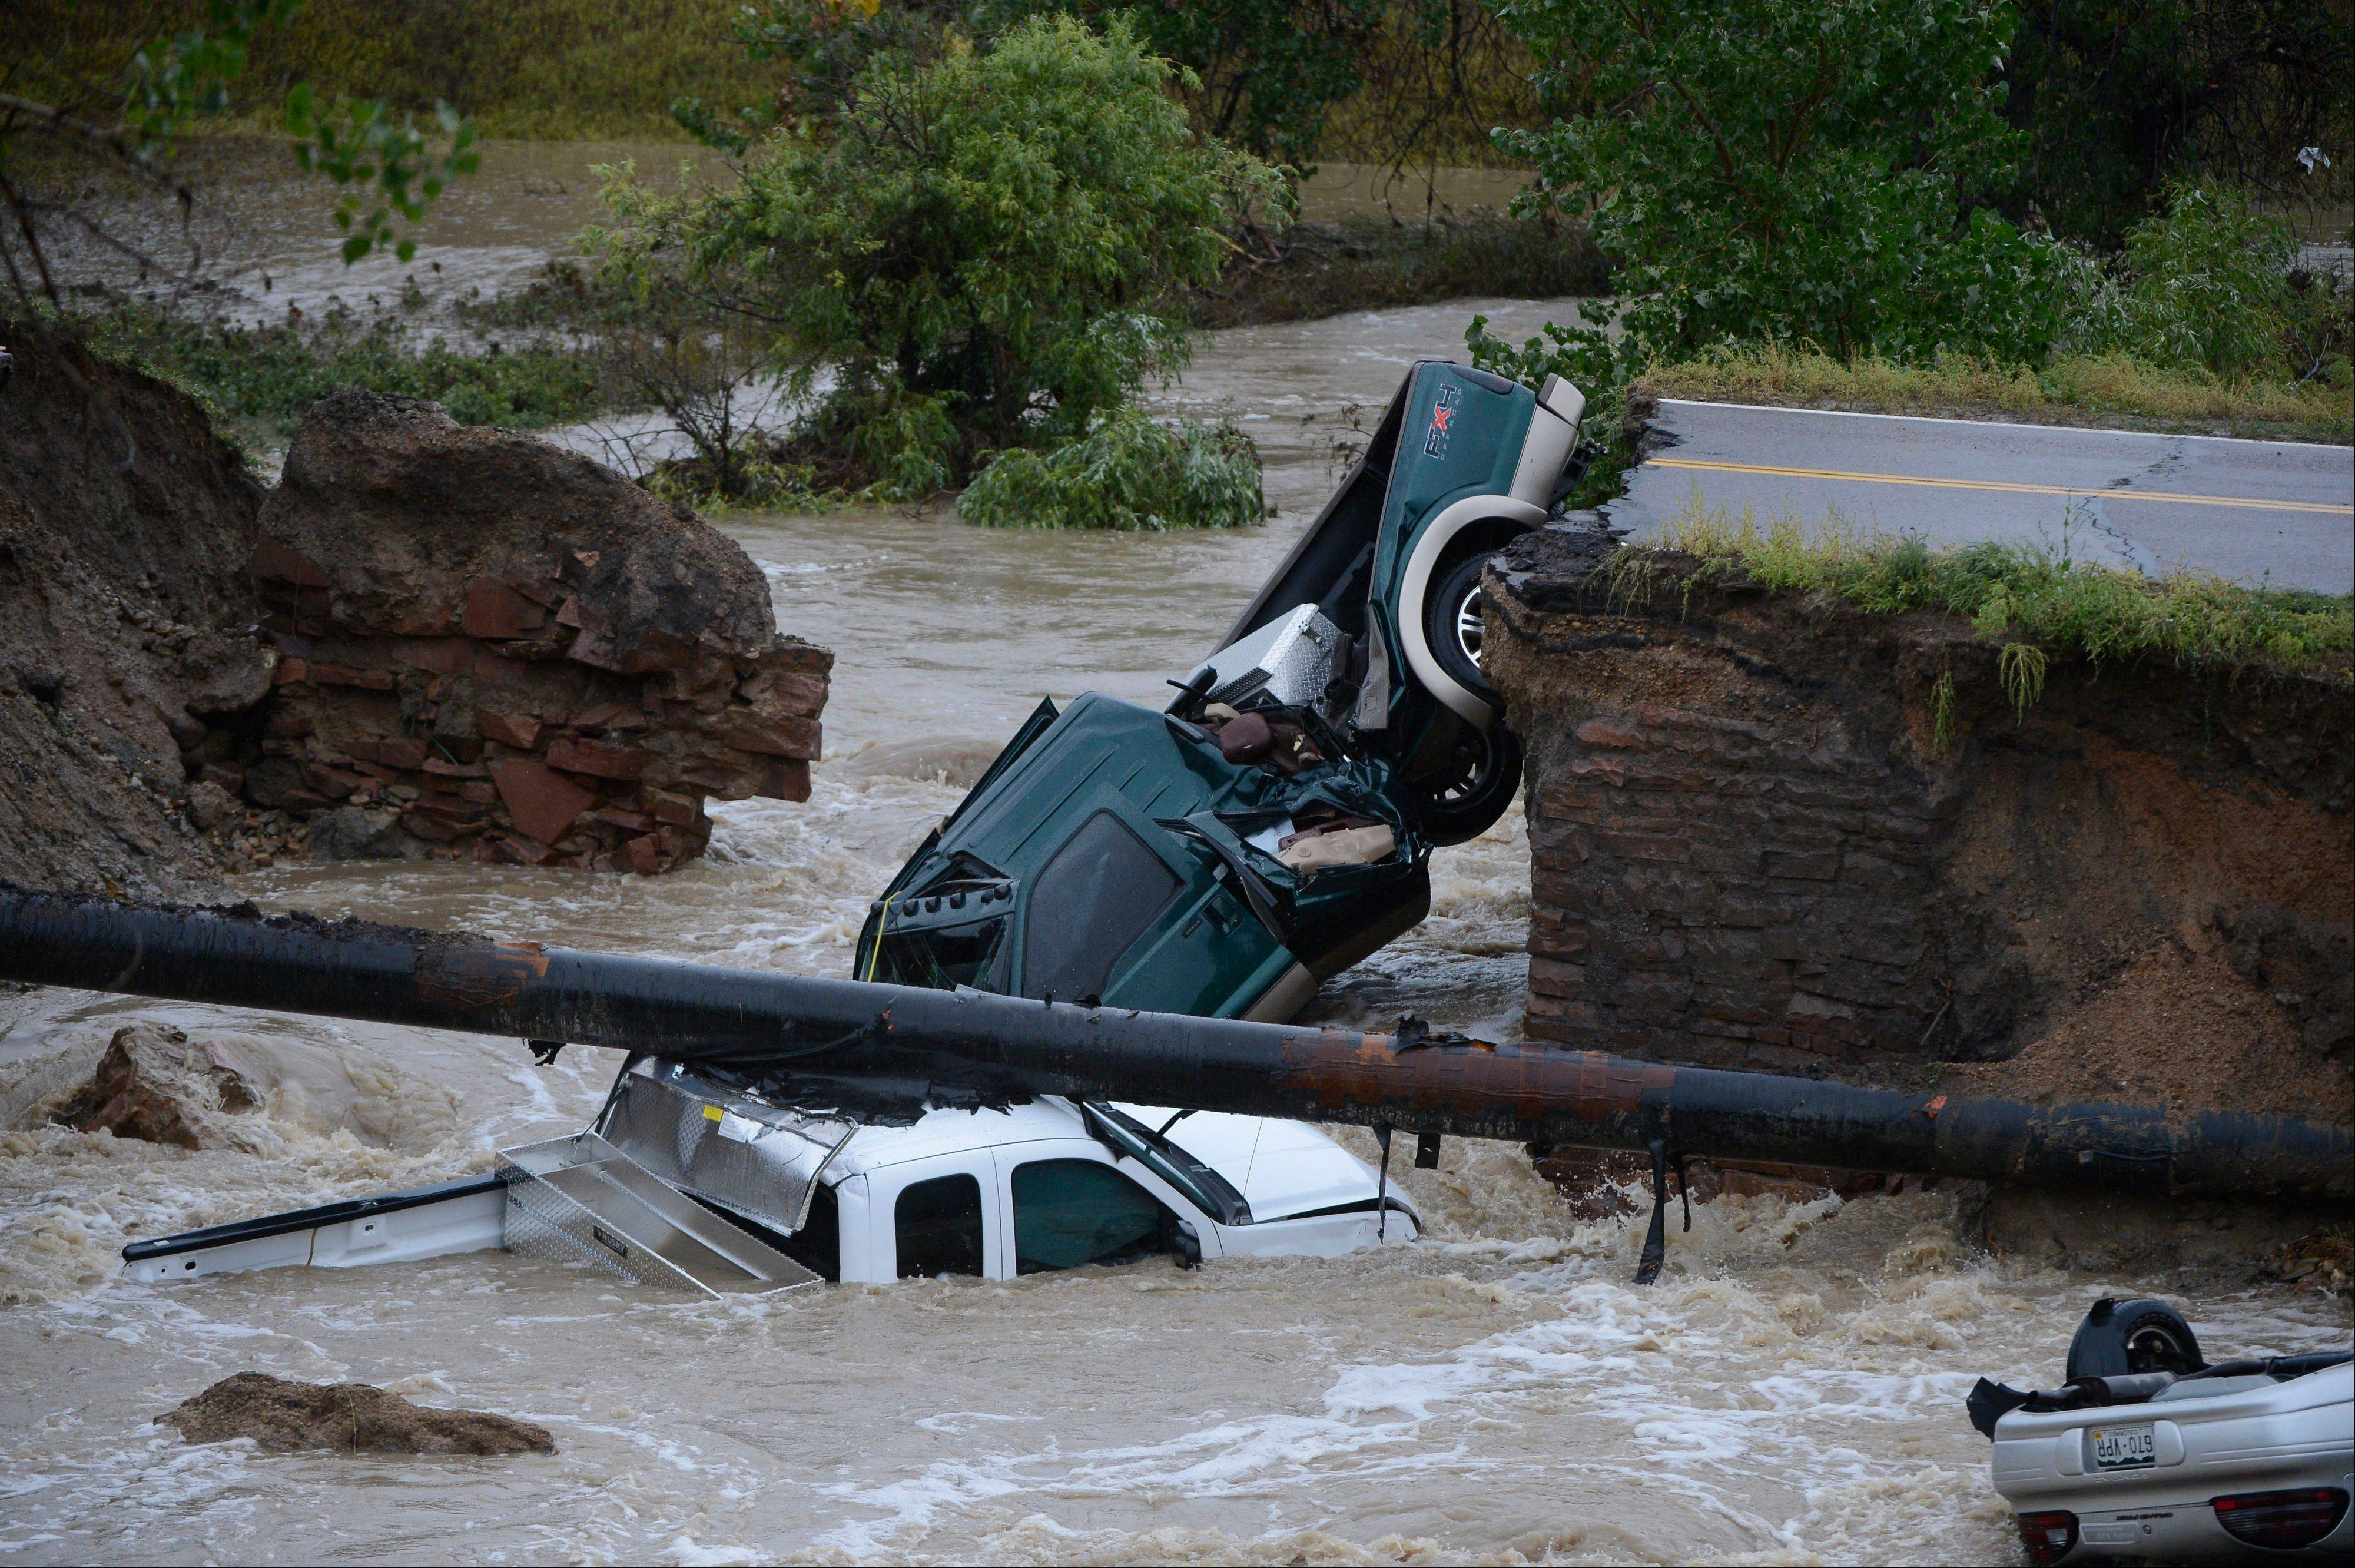 Three vehicles crashed into a creek after the road washed out from beneath them near Dillon Rd. and 287 in Broomfield Colo., Thursday, Sept. 12, 2013 in heavy flooding. Three people were rescued.